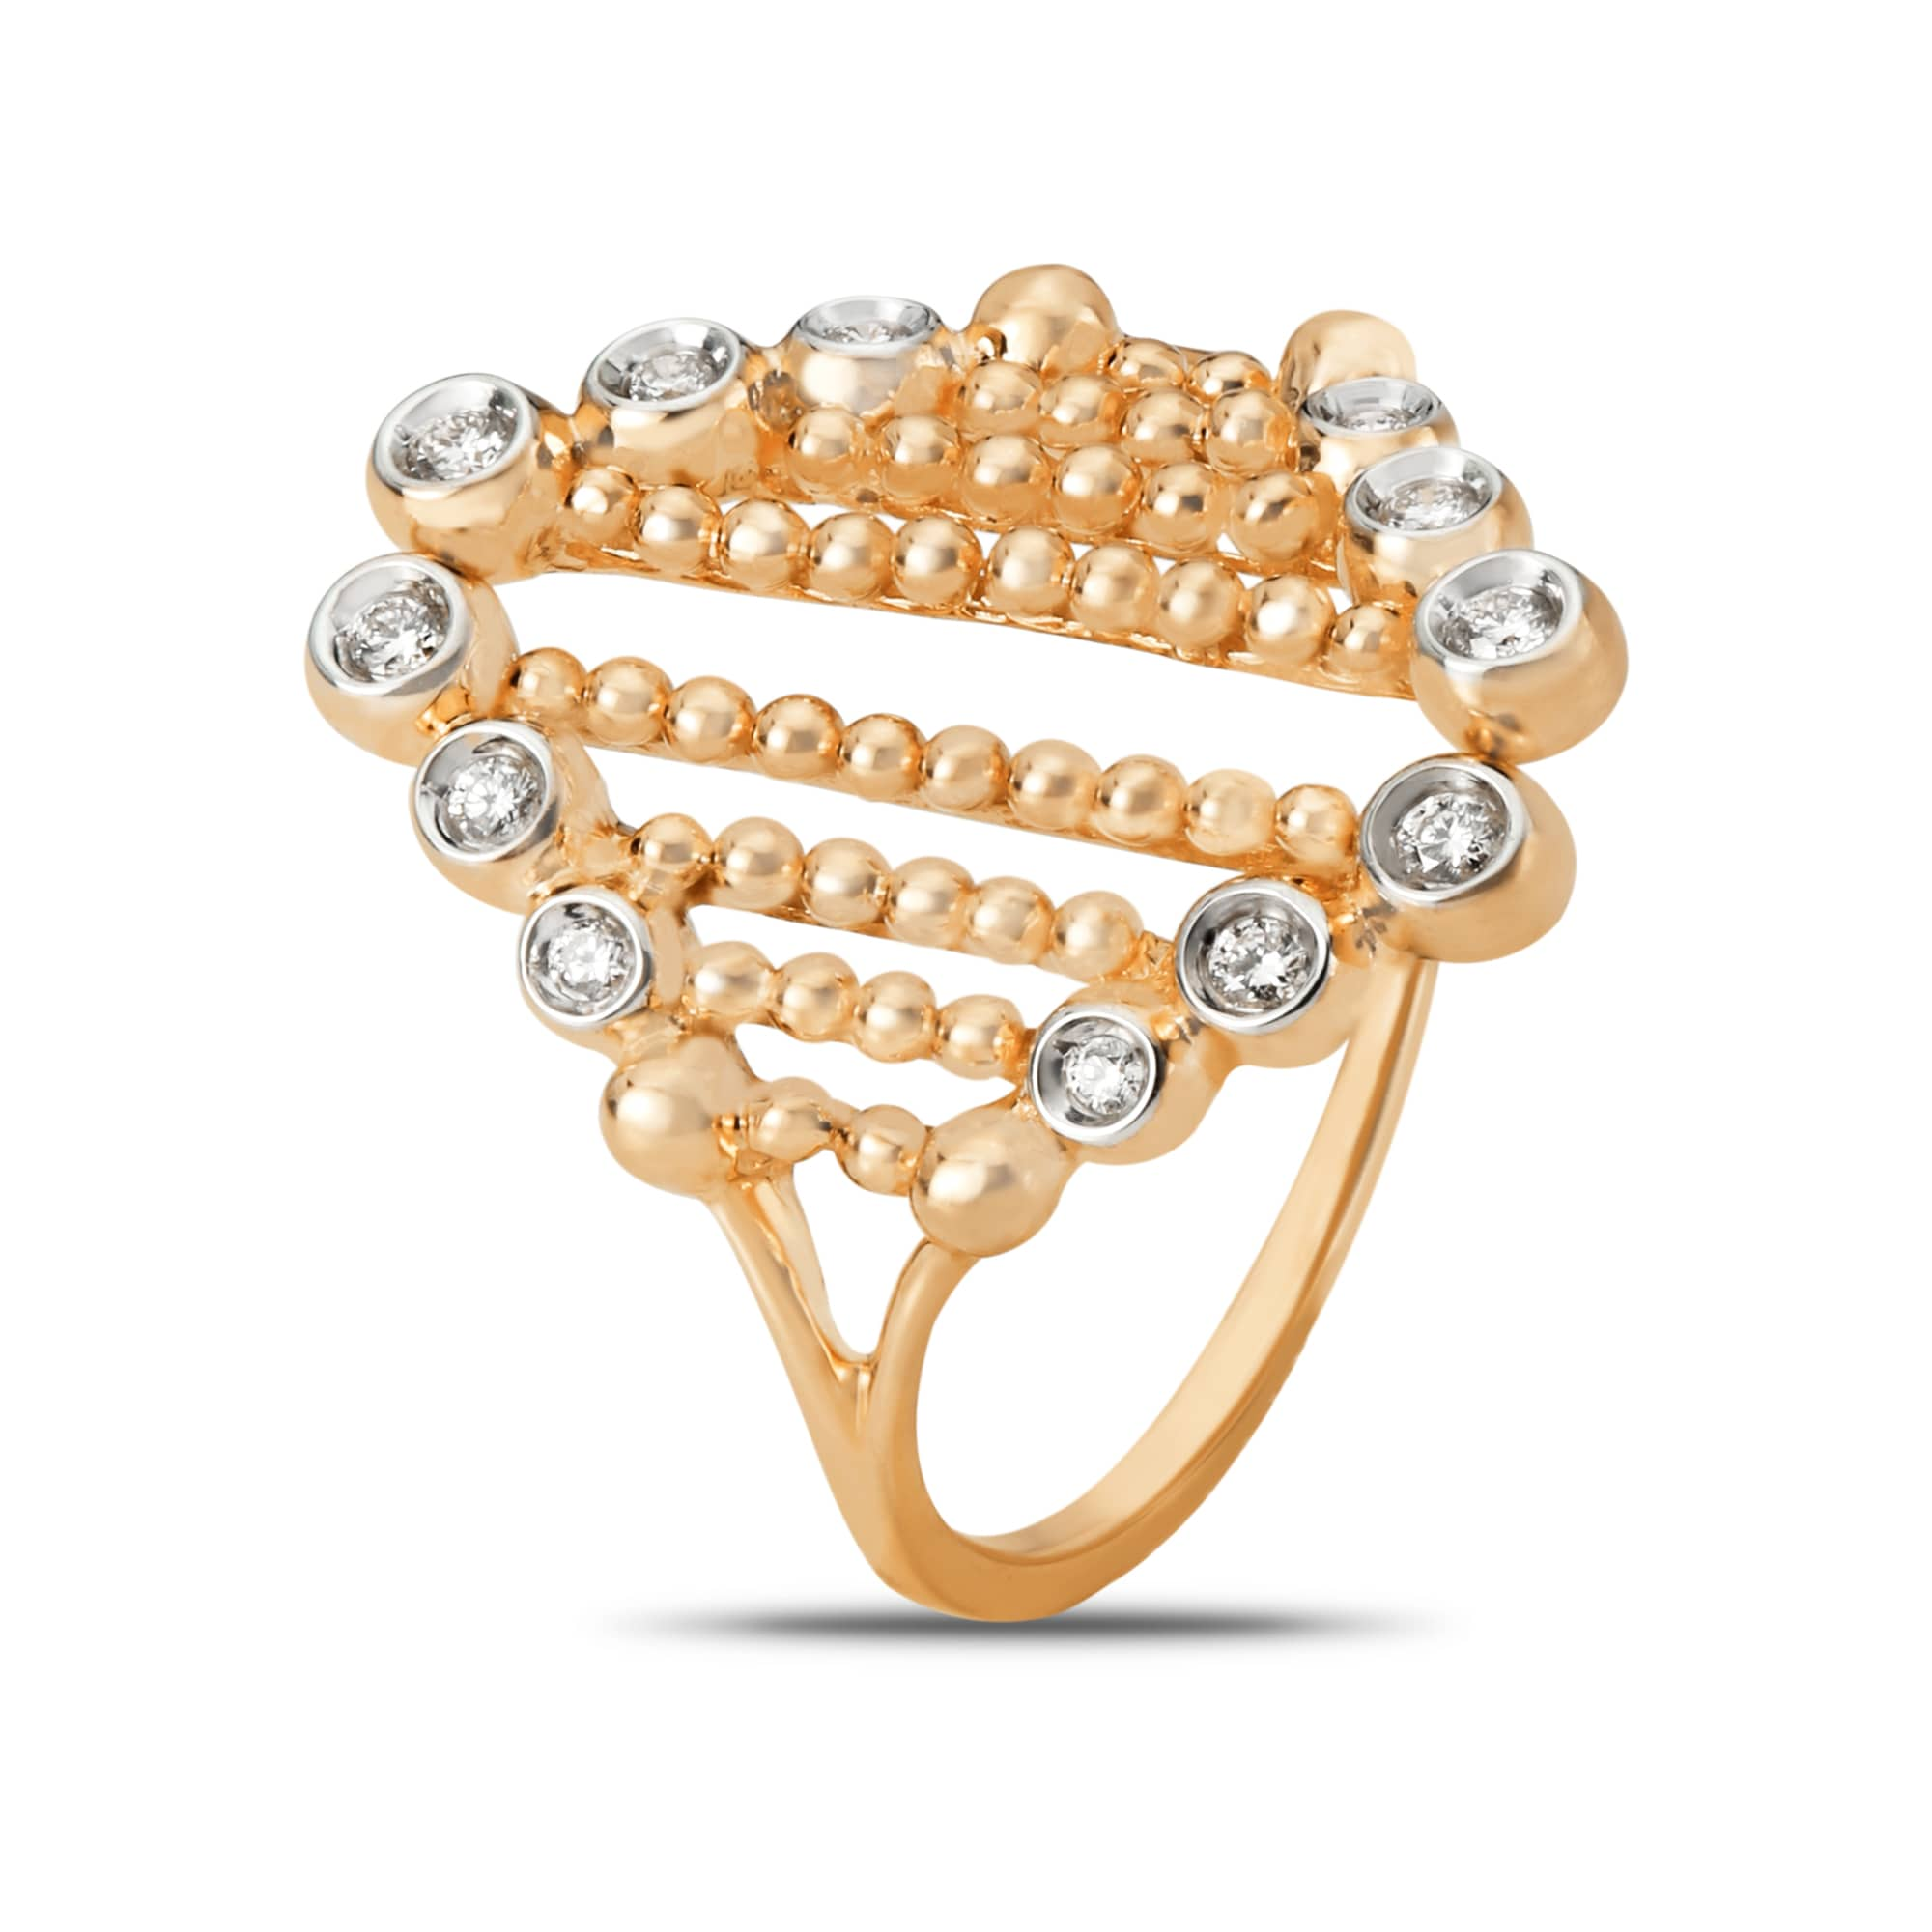 8ae2148fc74c4 Mia All-Rounders by Tanishq 14KT Yellow Gold Diamond Finger Ring with  Triangle Design